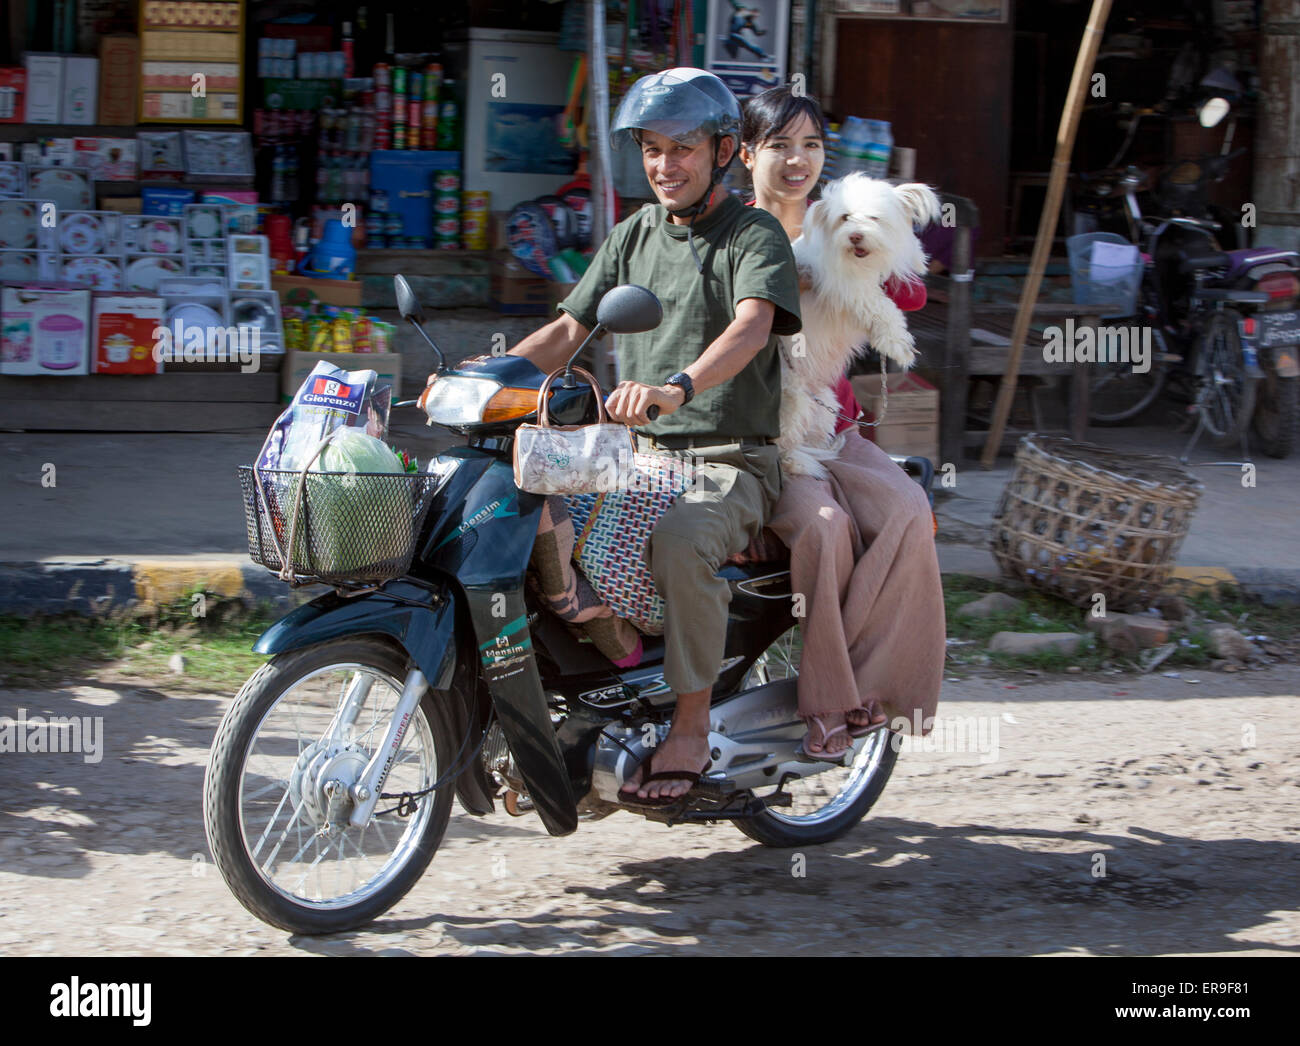 A man rides his motor-cycle in the Burmese town of Hsipaw. His woman passenger holds a large white dog. - Stock Image